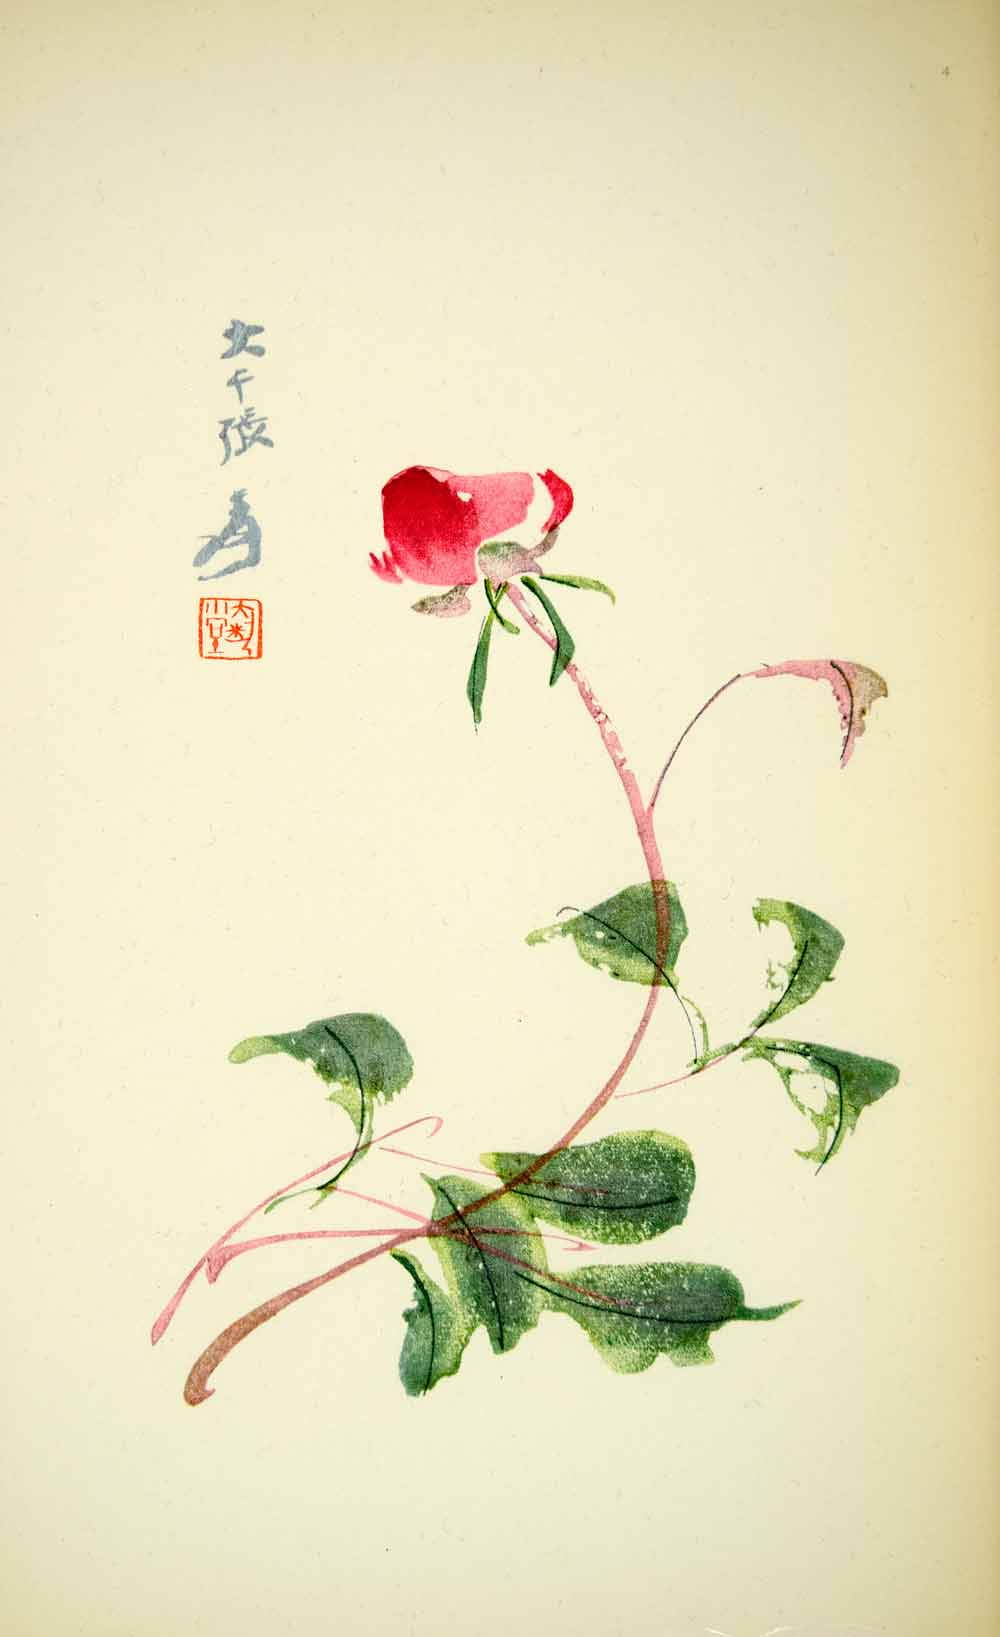 1953 Lithograph Rose Chang Ta-Chien Chinese Art Flower Bloom Blossom Pink Blush